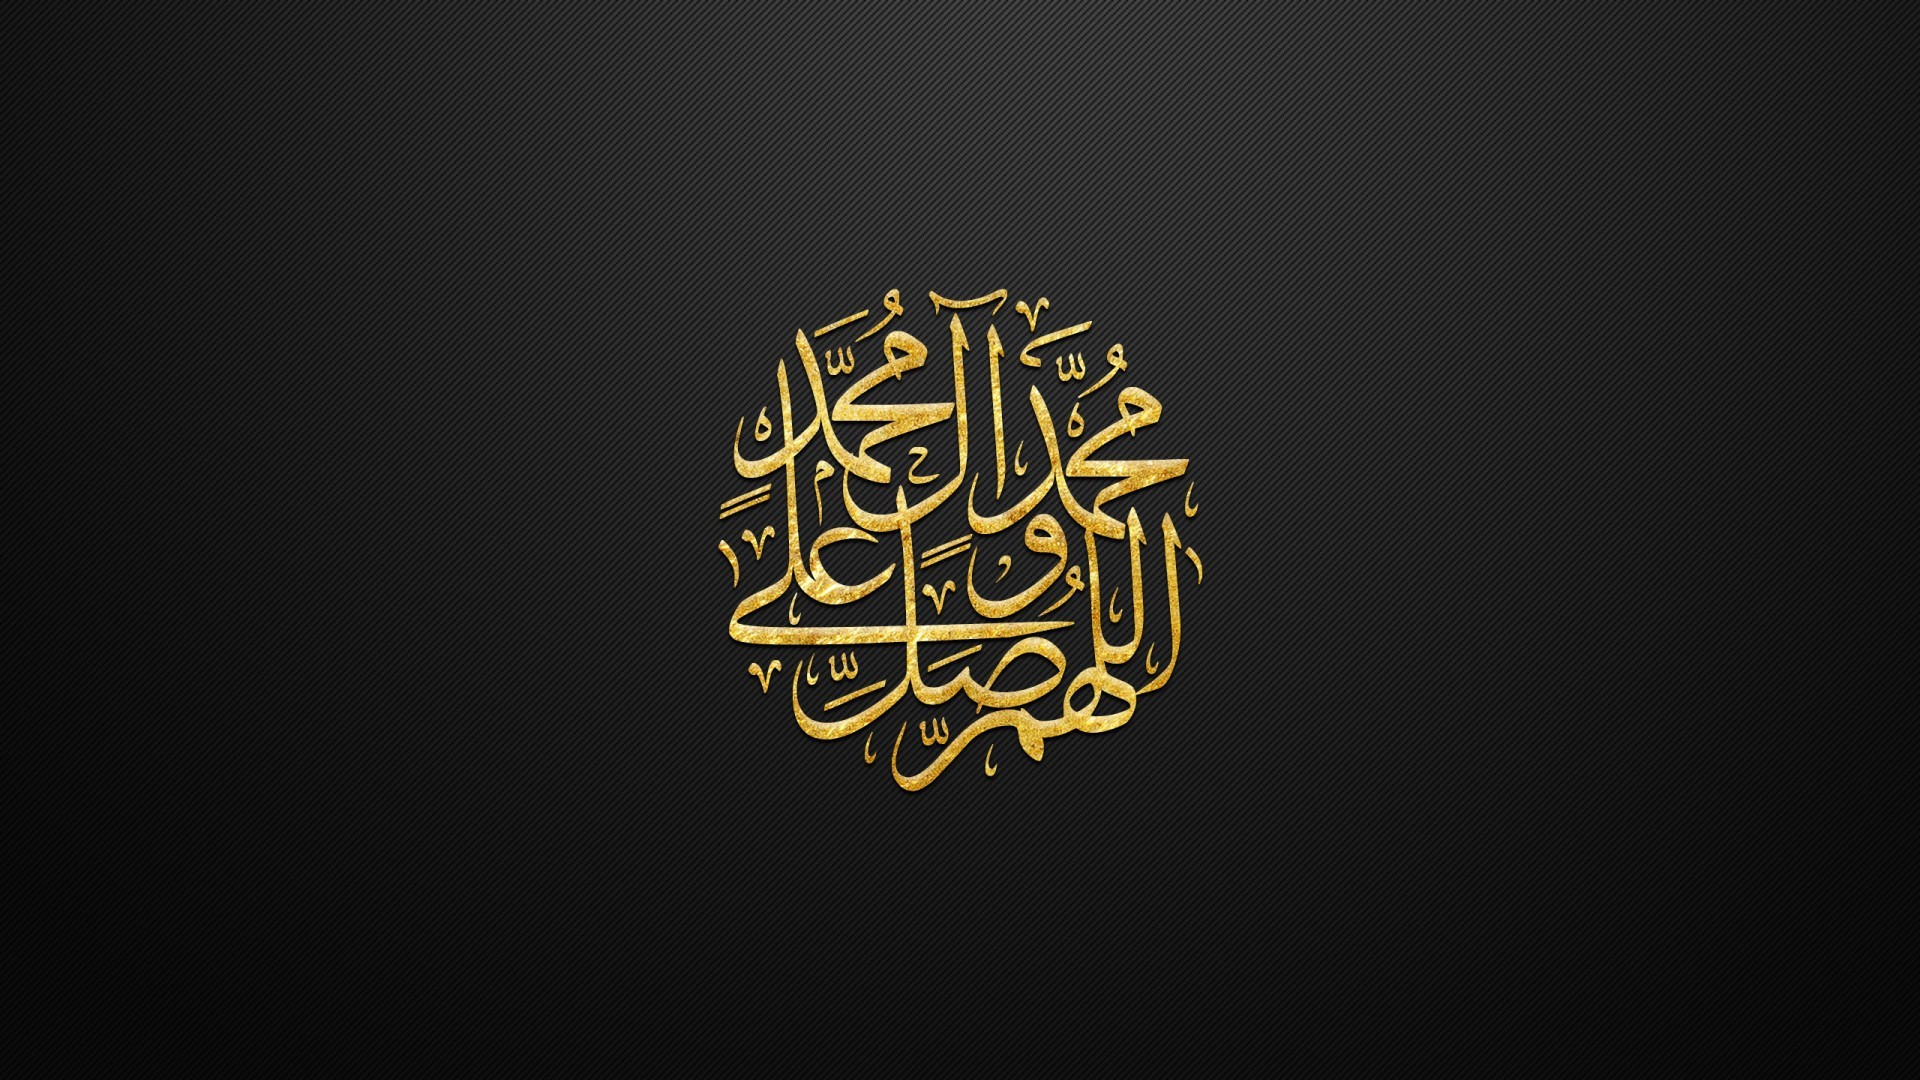 1920x1080 Arabic Wallpaper Widescreen.